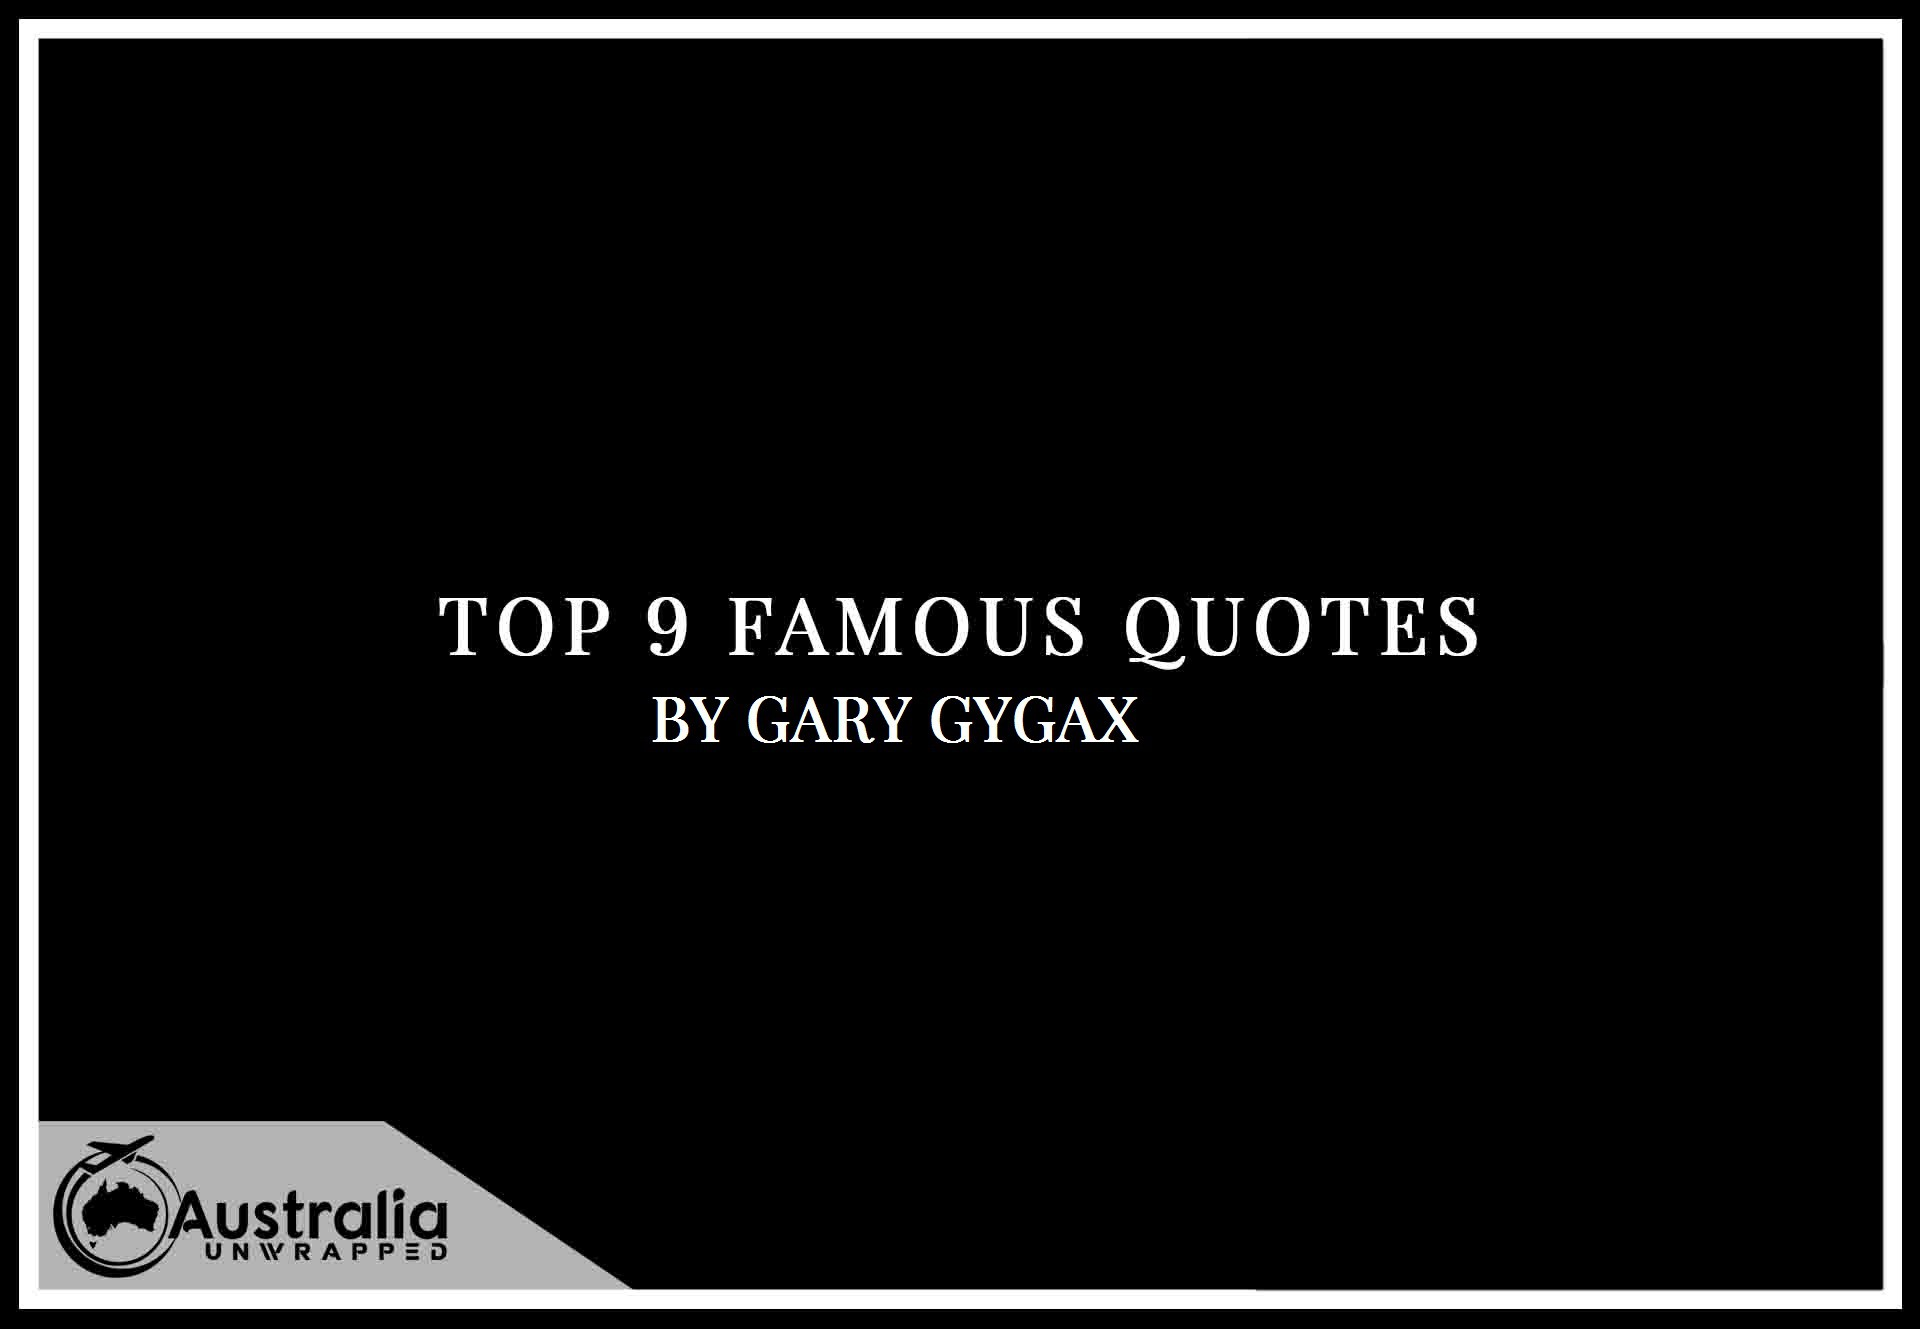 Gary Gygax's Top 9 Popular and Famous Quotes